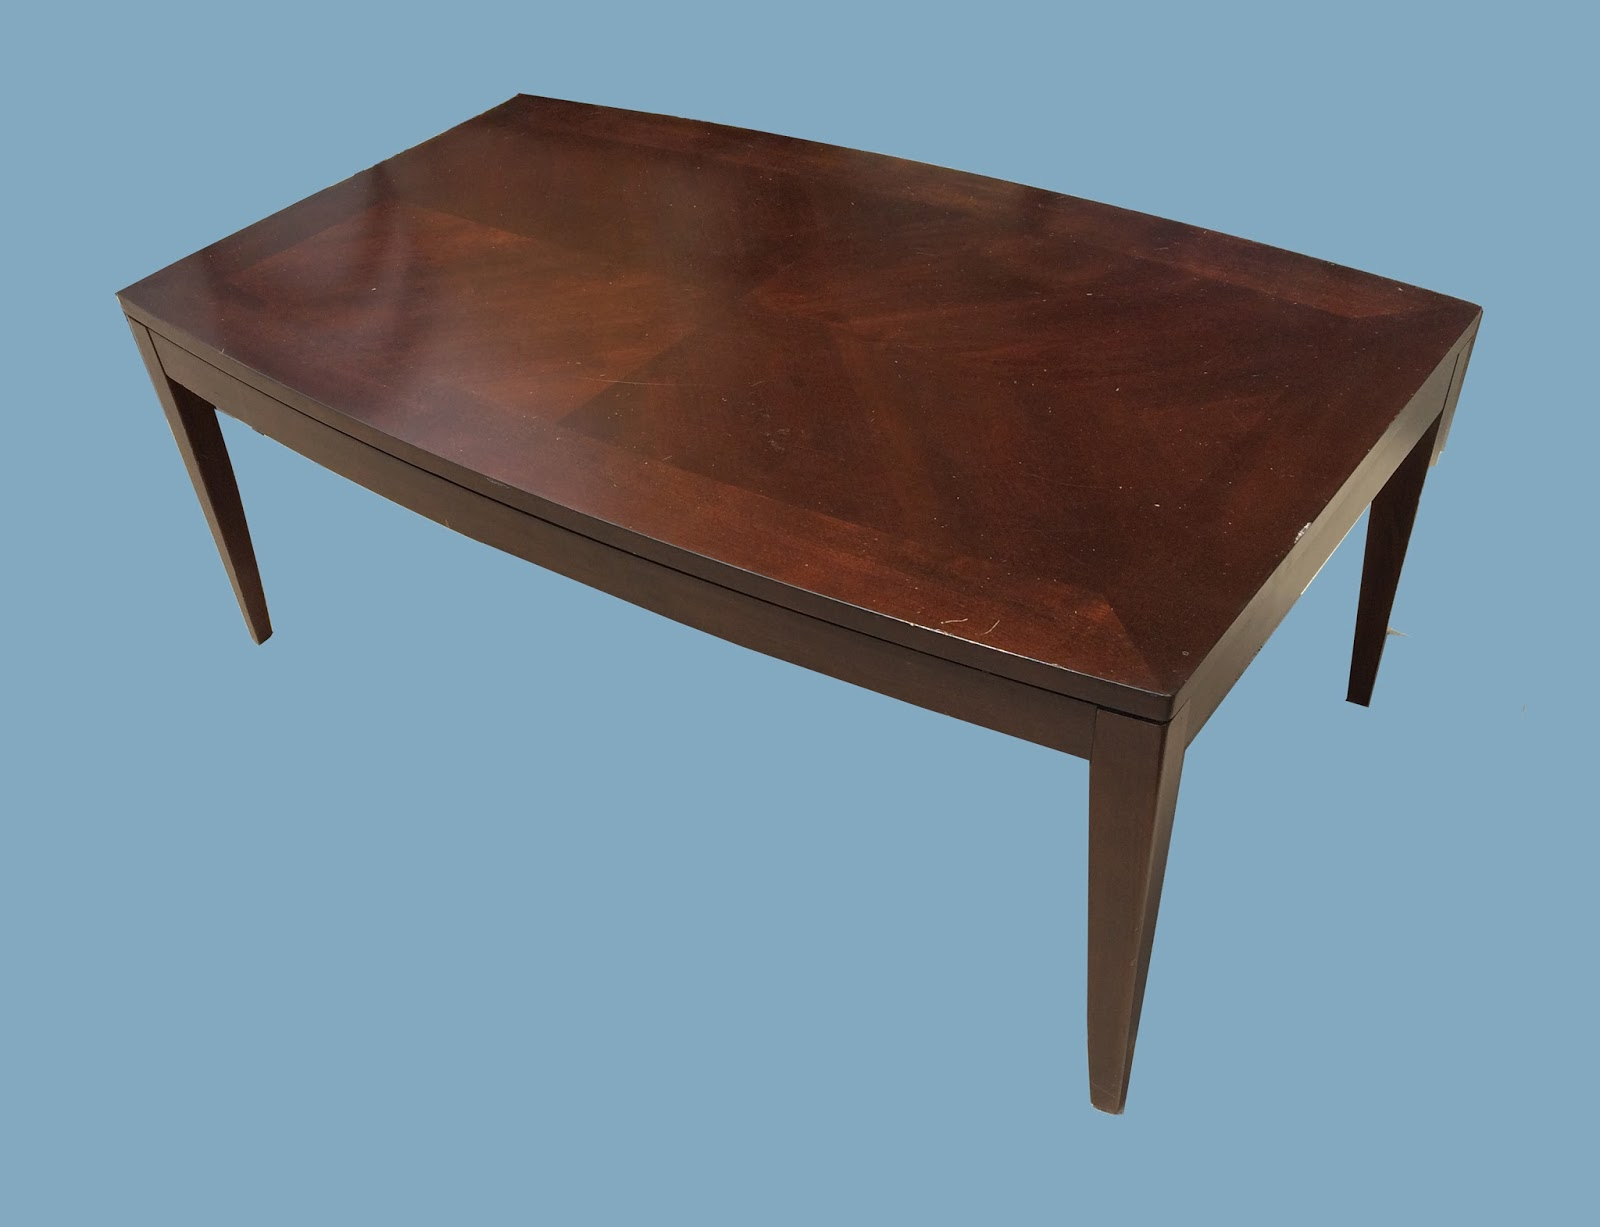 Uhuru Furniture Collectibles Dark Walnut Coffee Table 85 75 Sold